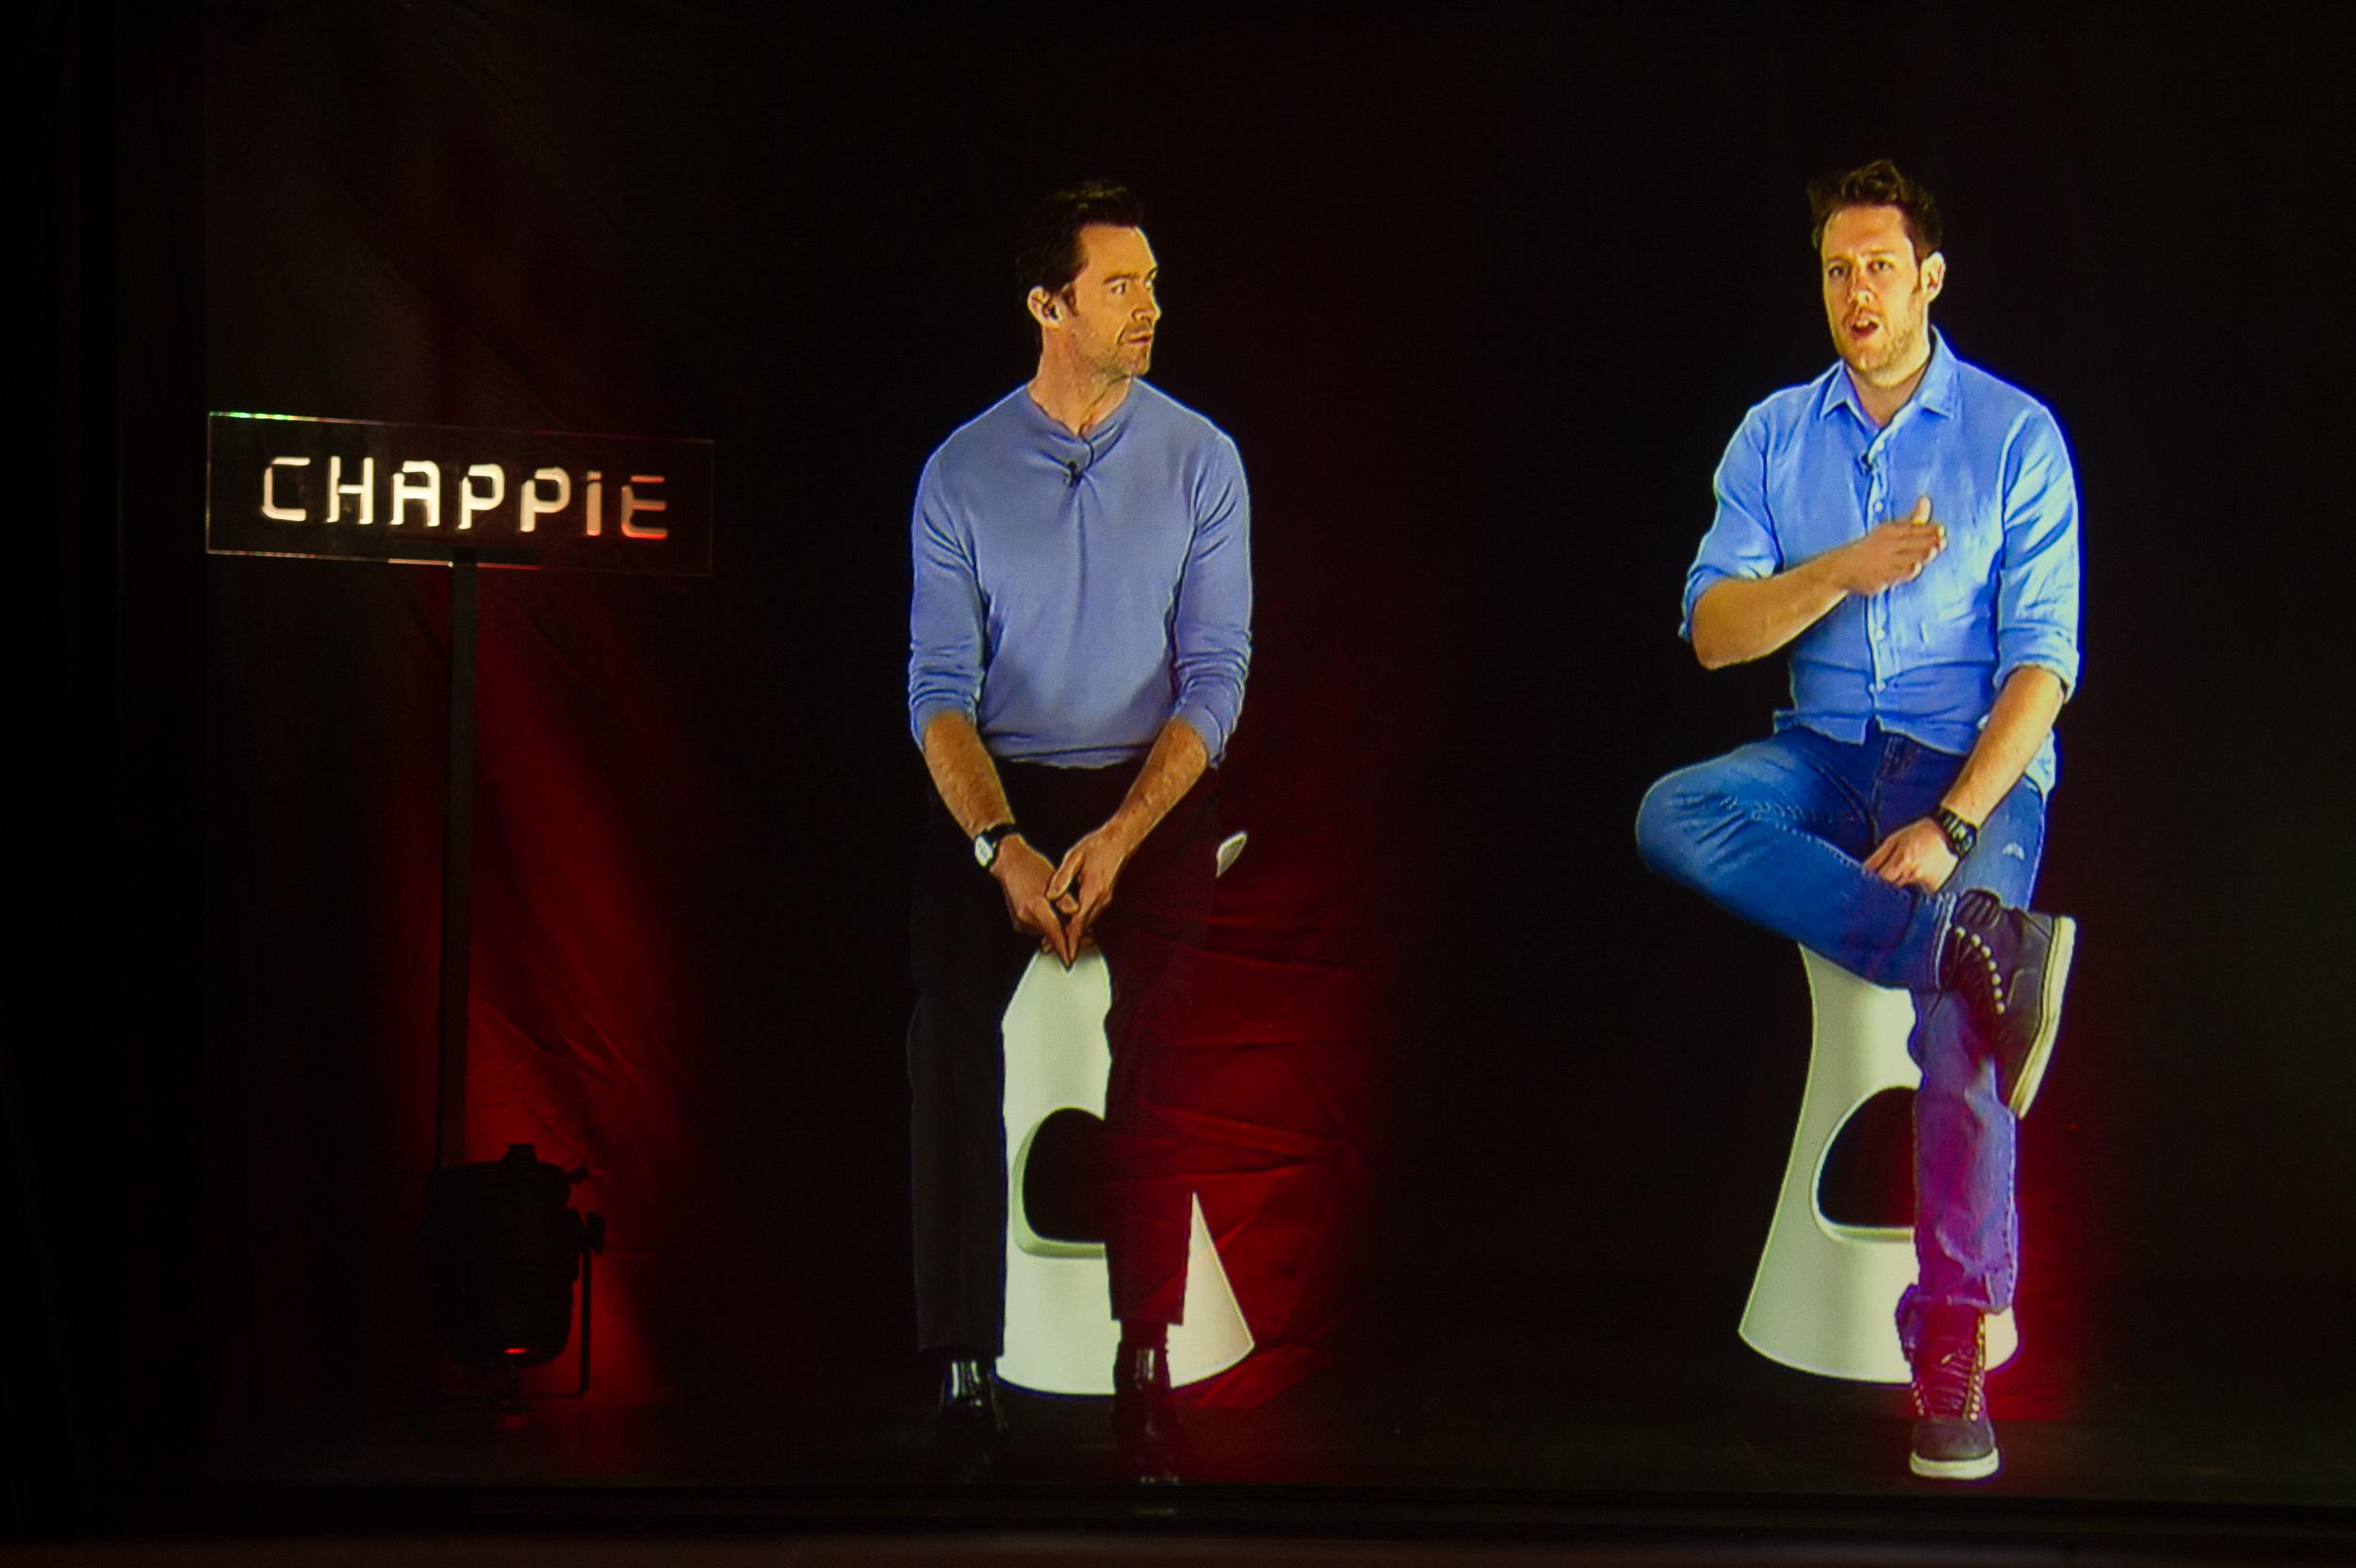 Hugh Jackman, Neill Blomkamp Talk 'Chappie' at Historic Hologram Press Conference